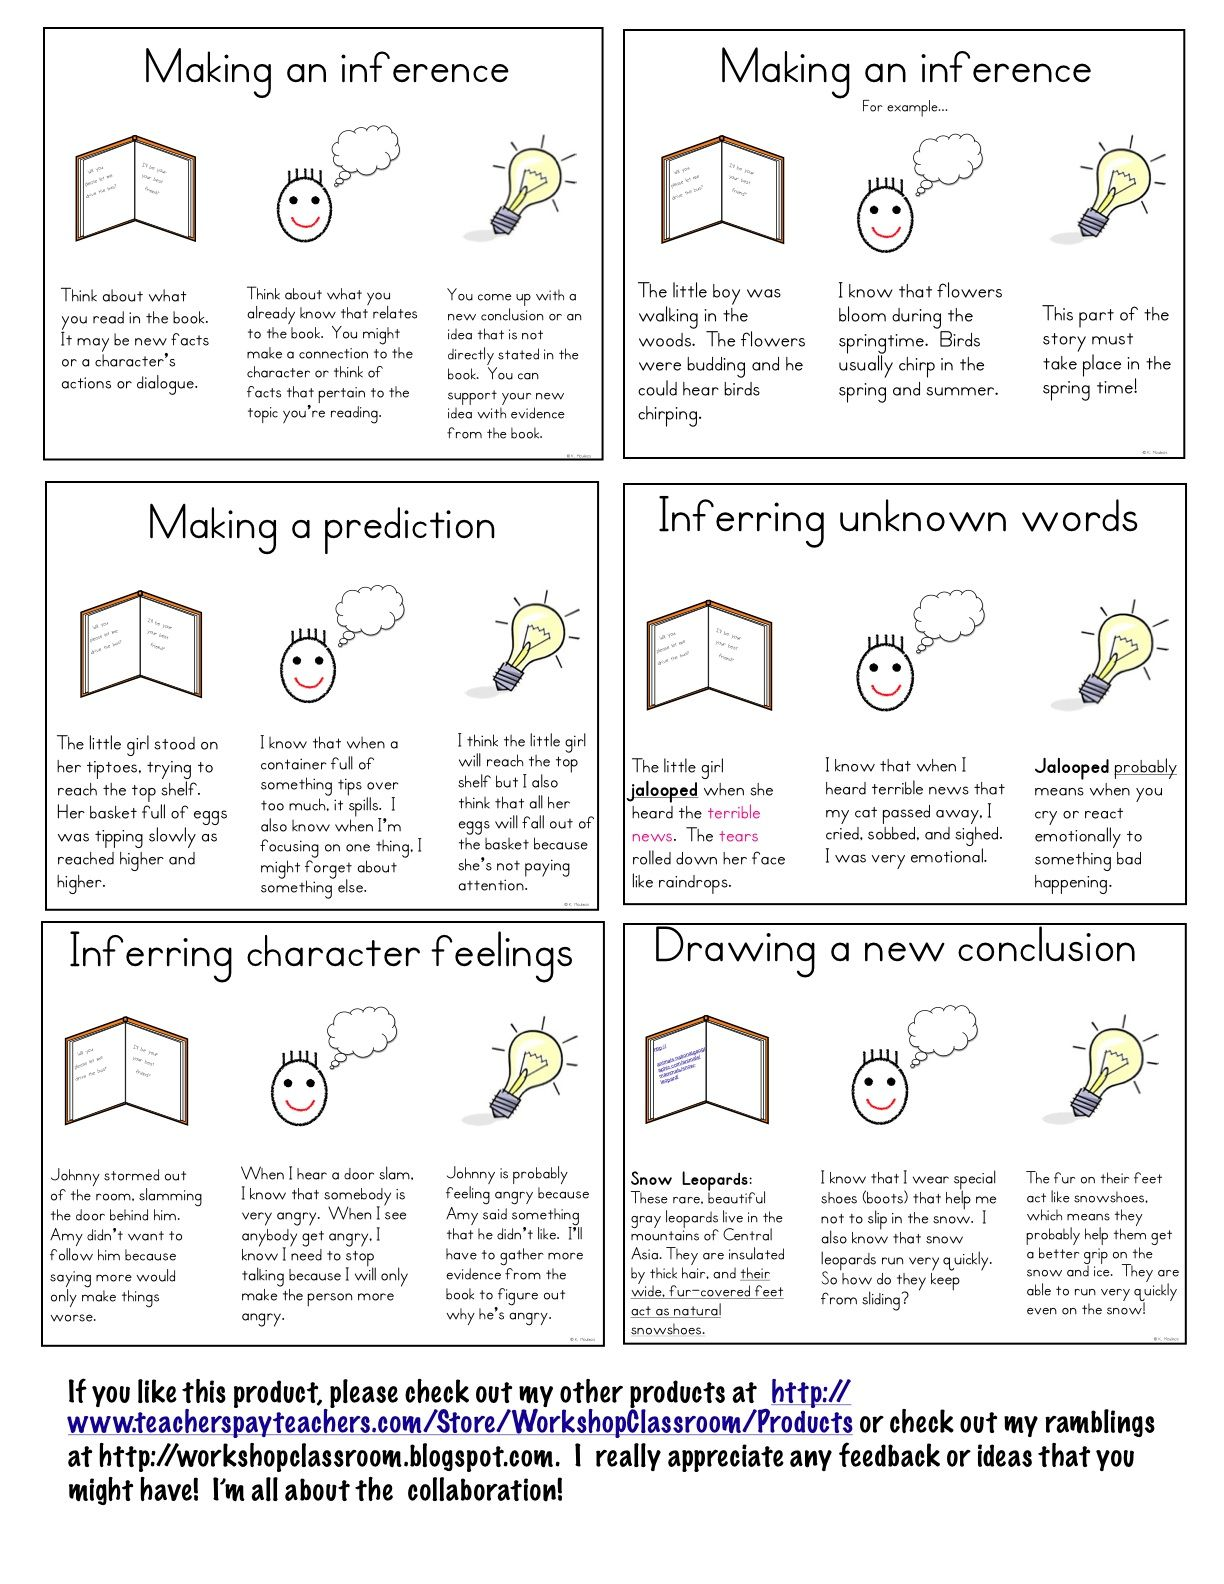 Free Worksheet Inferences Worksheet 17 best images about inferencing on pinterest graphic organizers beautiful artwork and charts